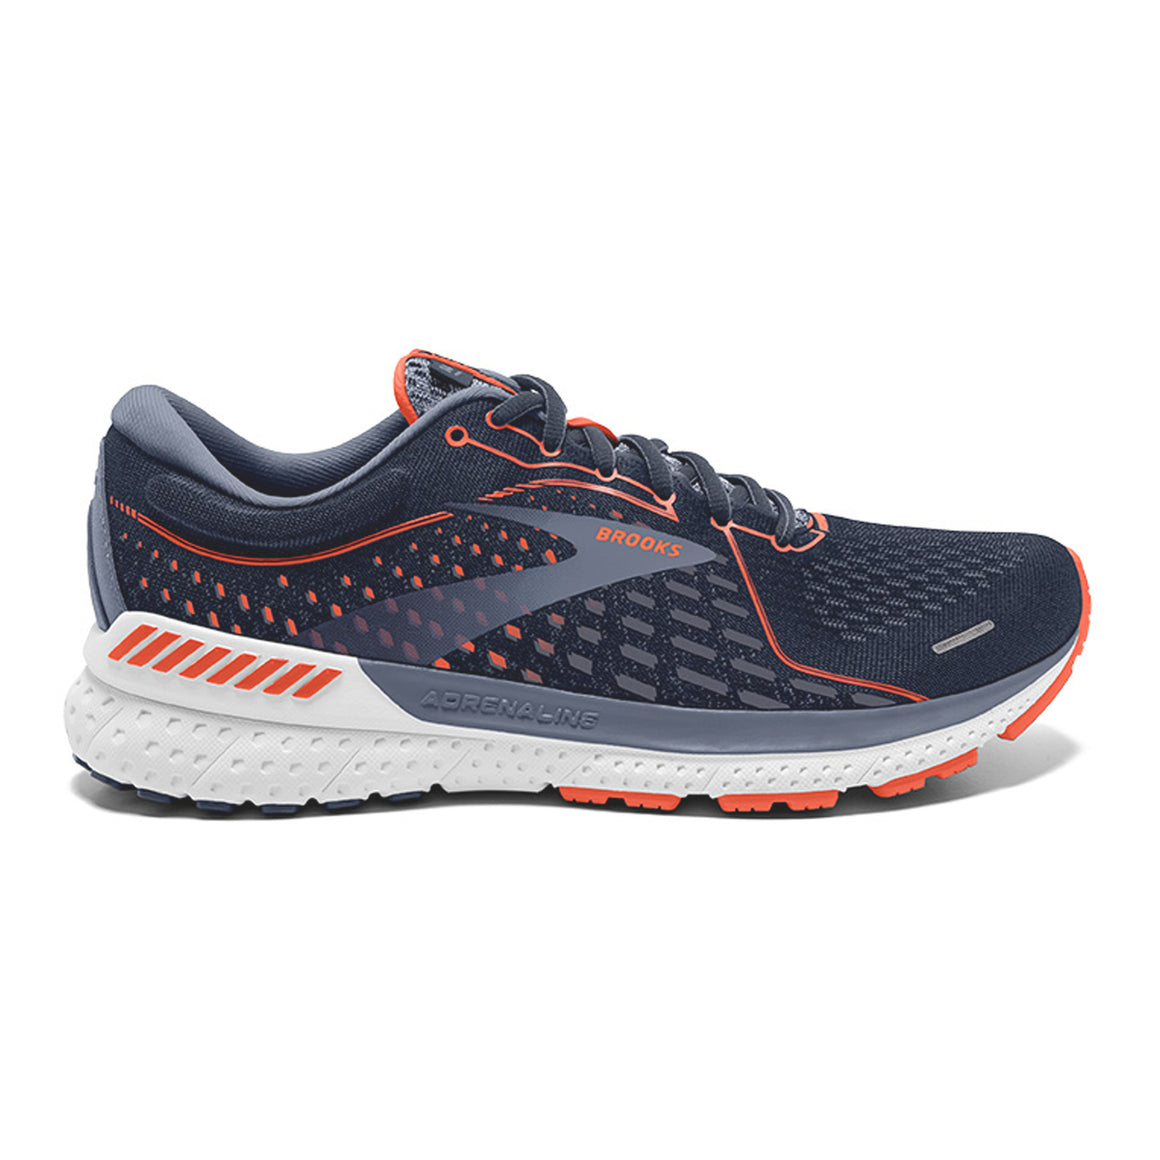 Adenaline GTS 21 for Men in Navy/Red Clay/Grey